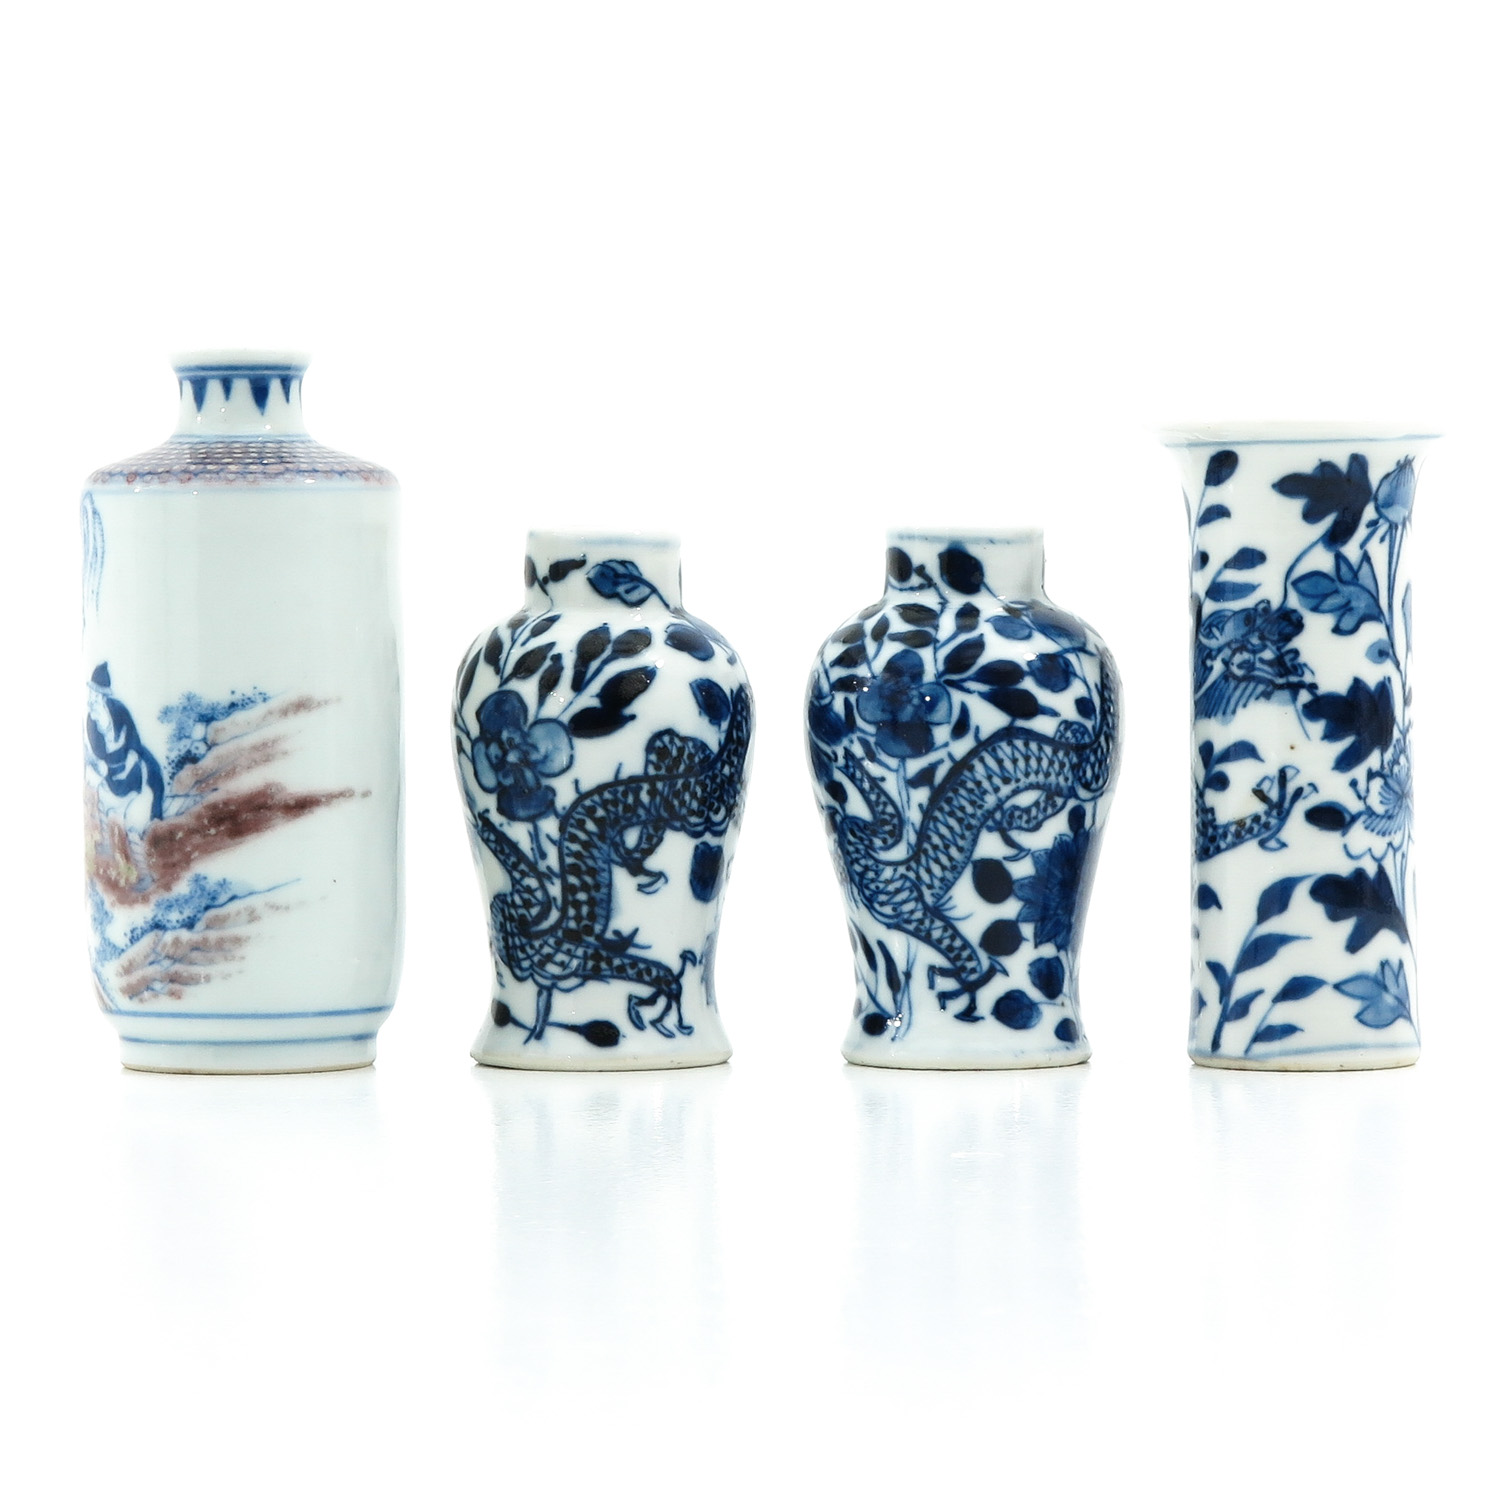 A Collection of 4 Miniature Vases - Image 2 of 10